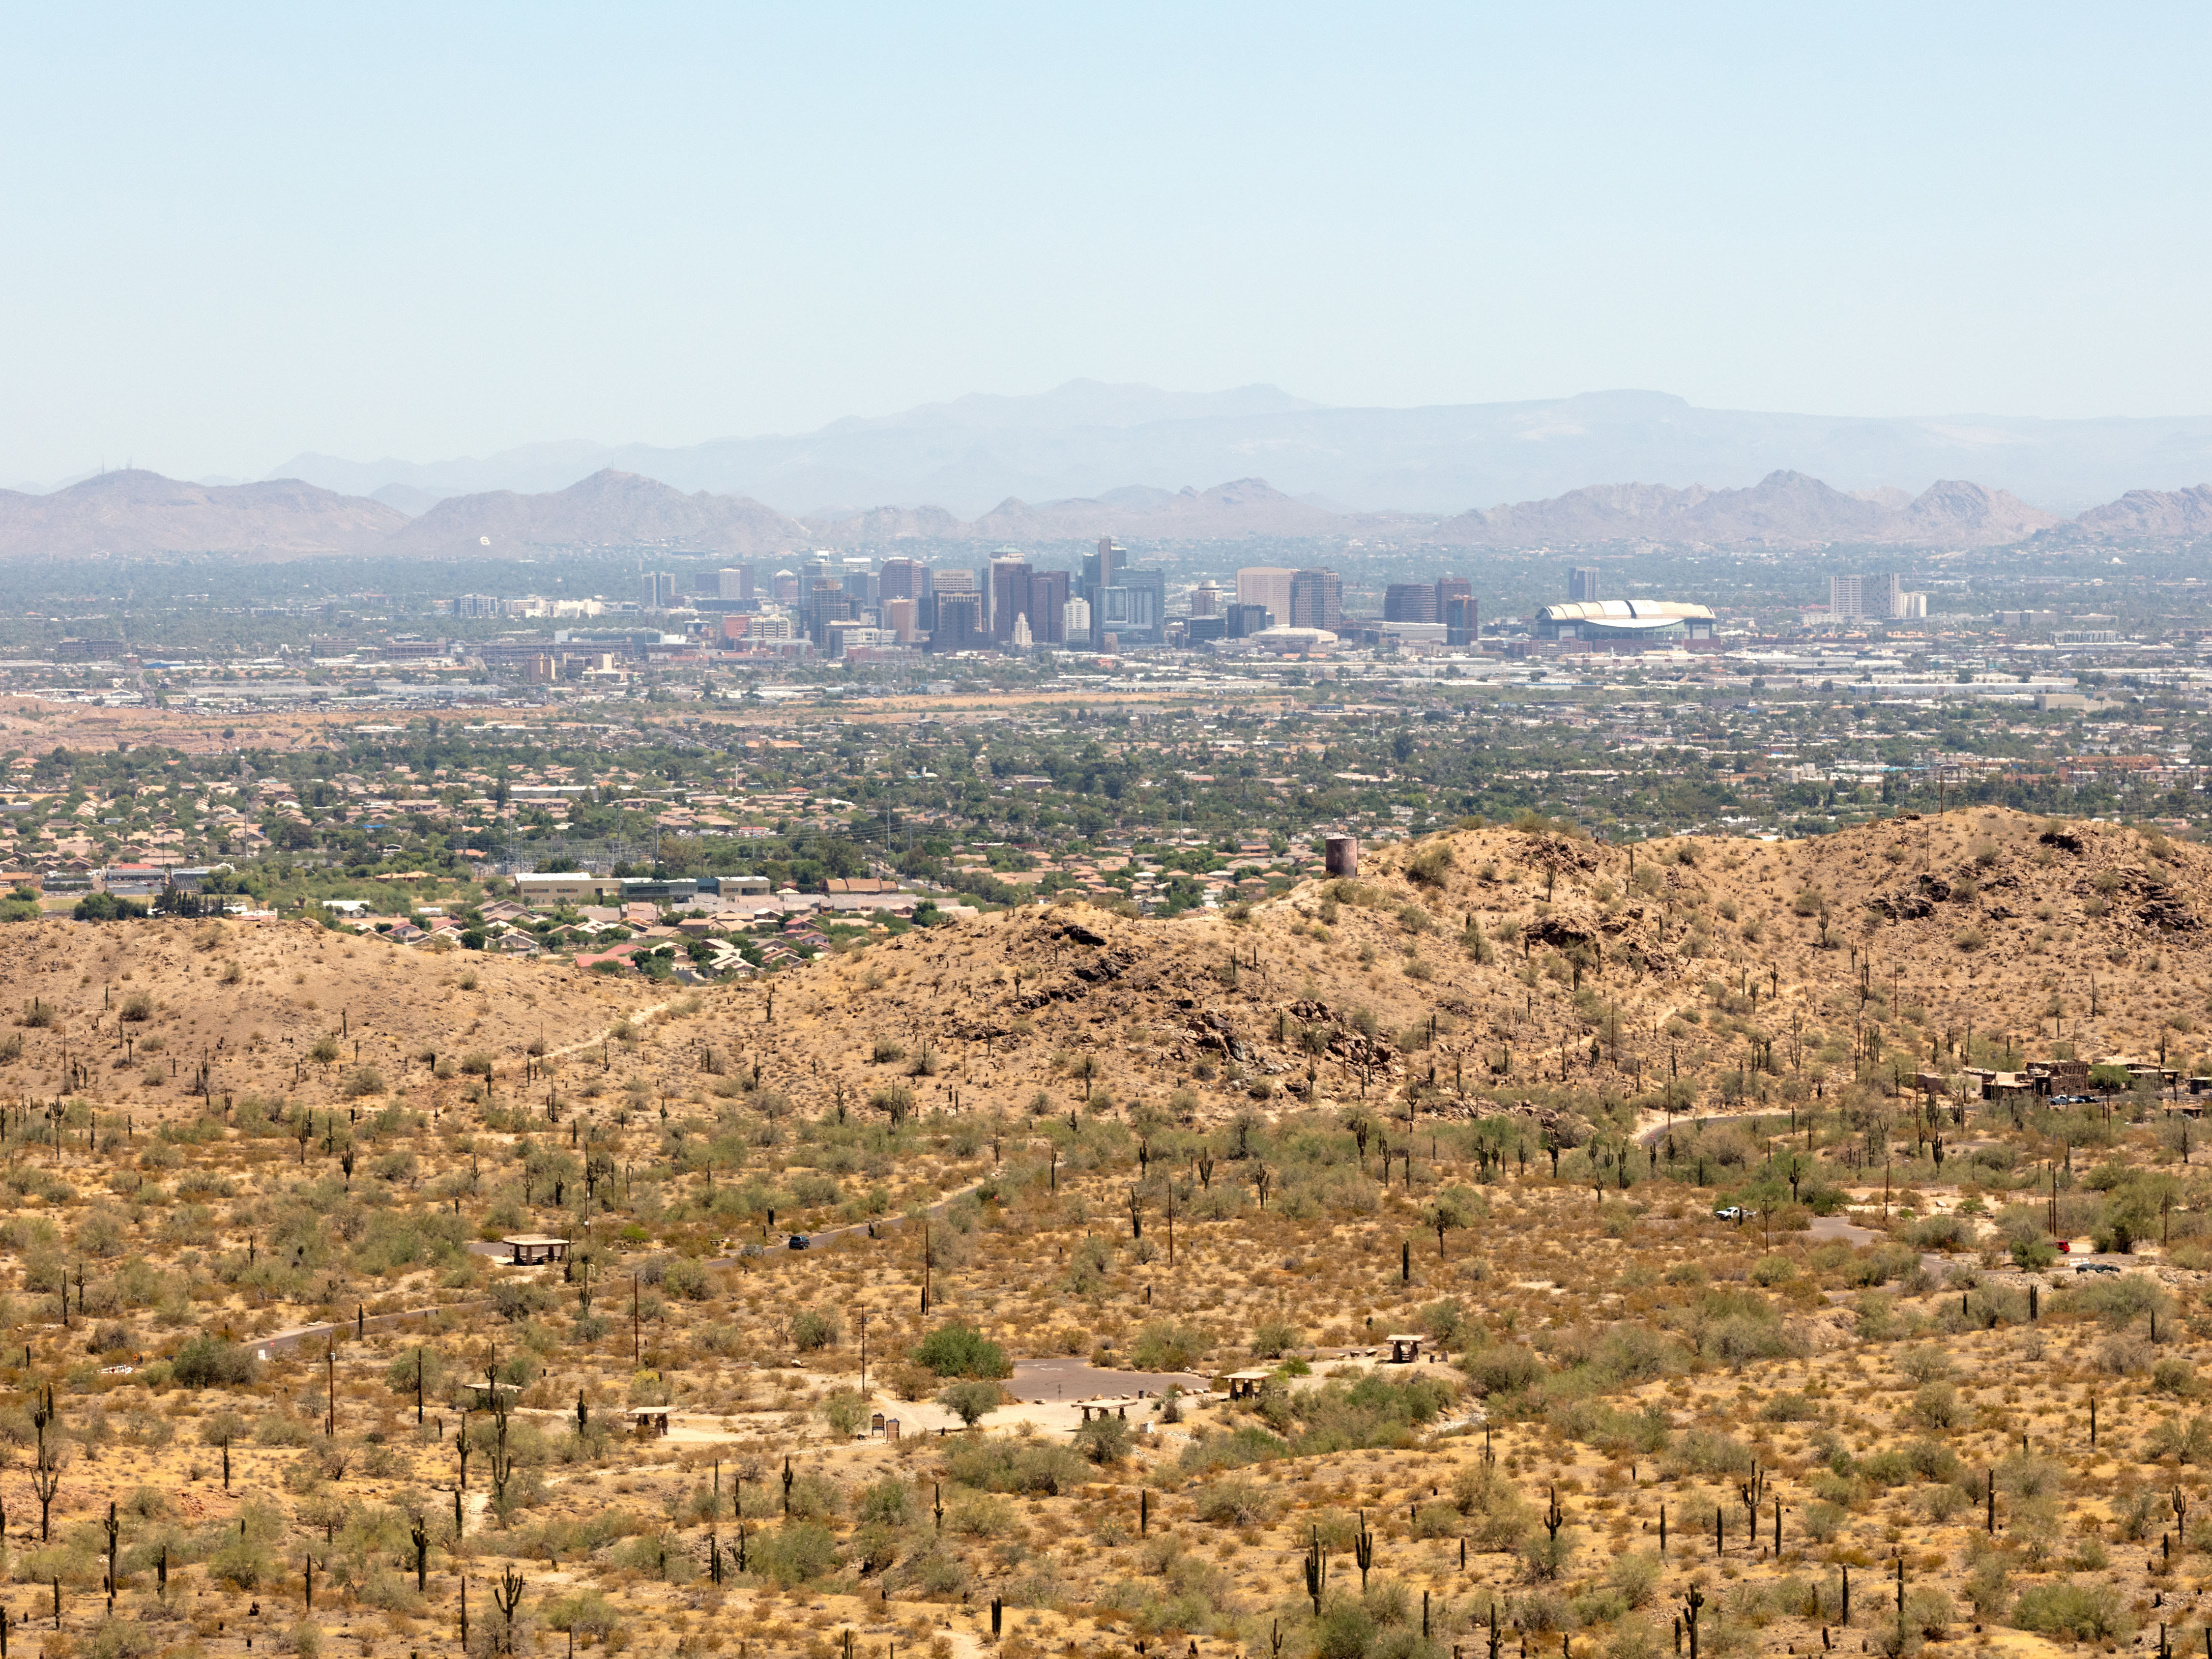 A view of Phoenix from South Mountain Park on June 18, 2020. MUST CREDIT: Washington Post photo by Cassidy Araiza